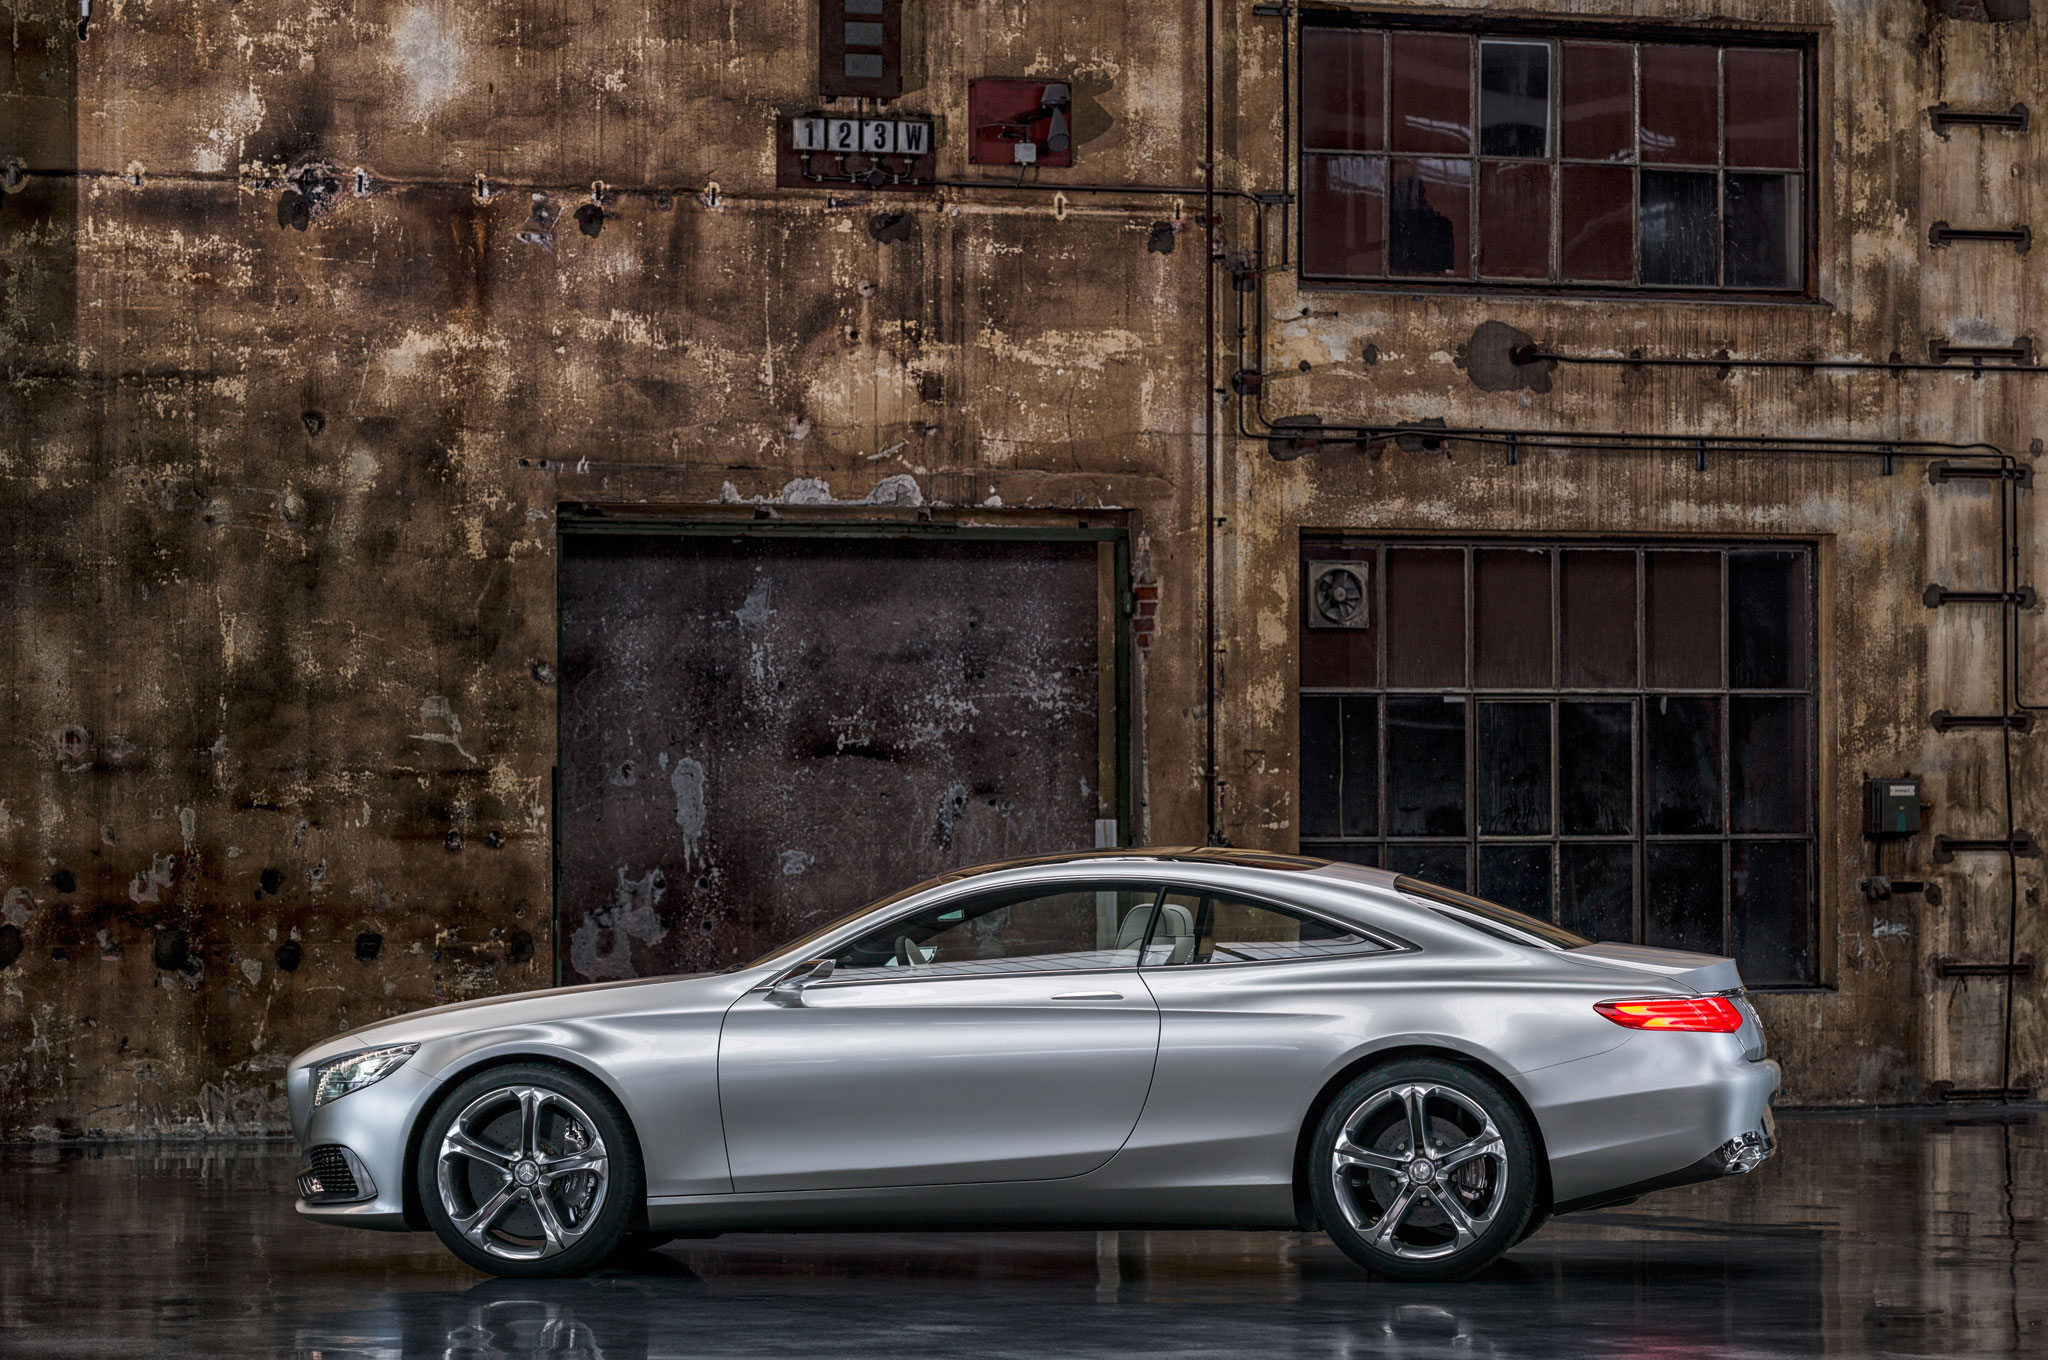 Mercedes benz concept s class coupe first look for 2013 mercedes benz s class coupe